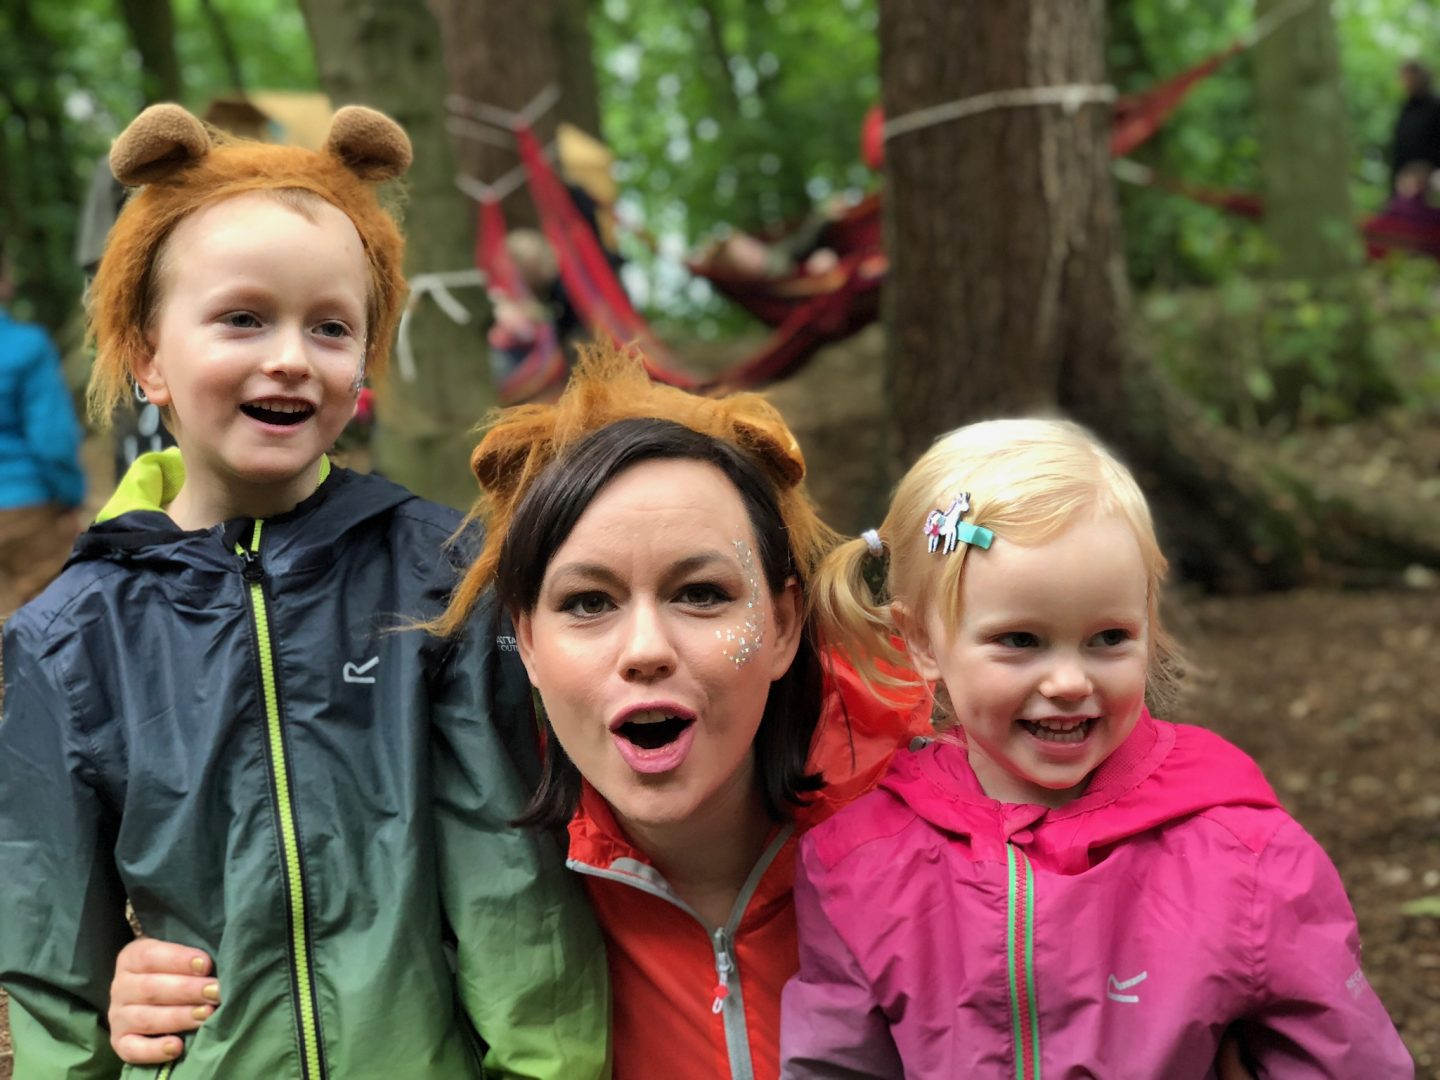 A woman and a boy and a girl and all posing for a photo together and are laughing. They are clearly at a festival and are wearing waterproof jackets.